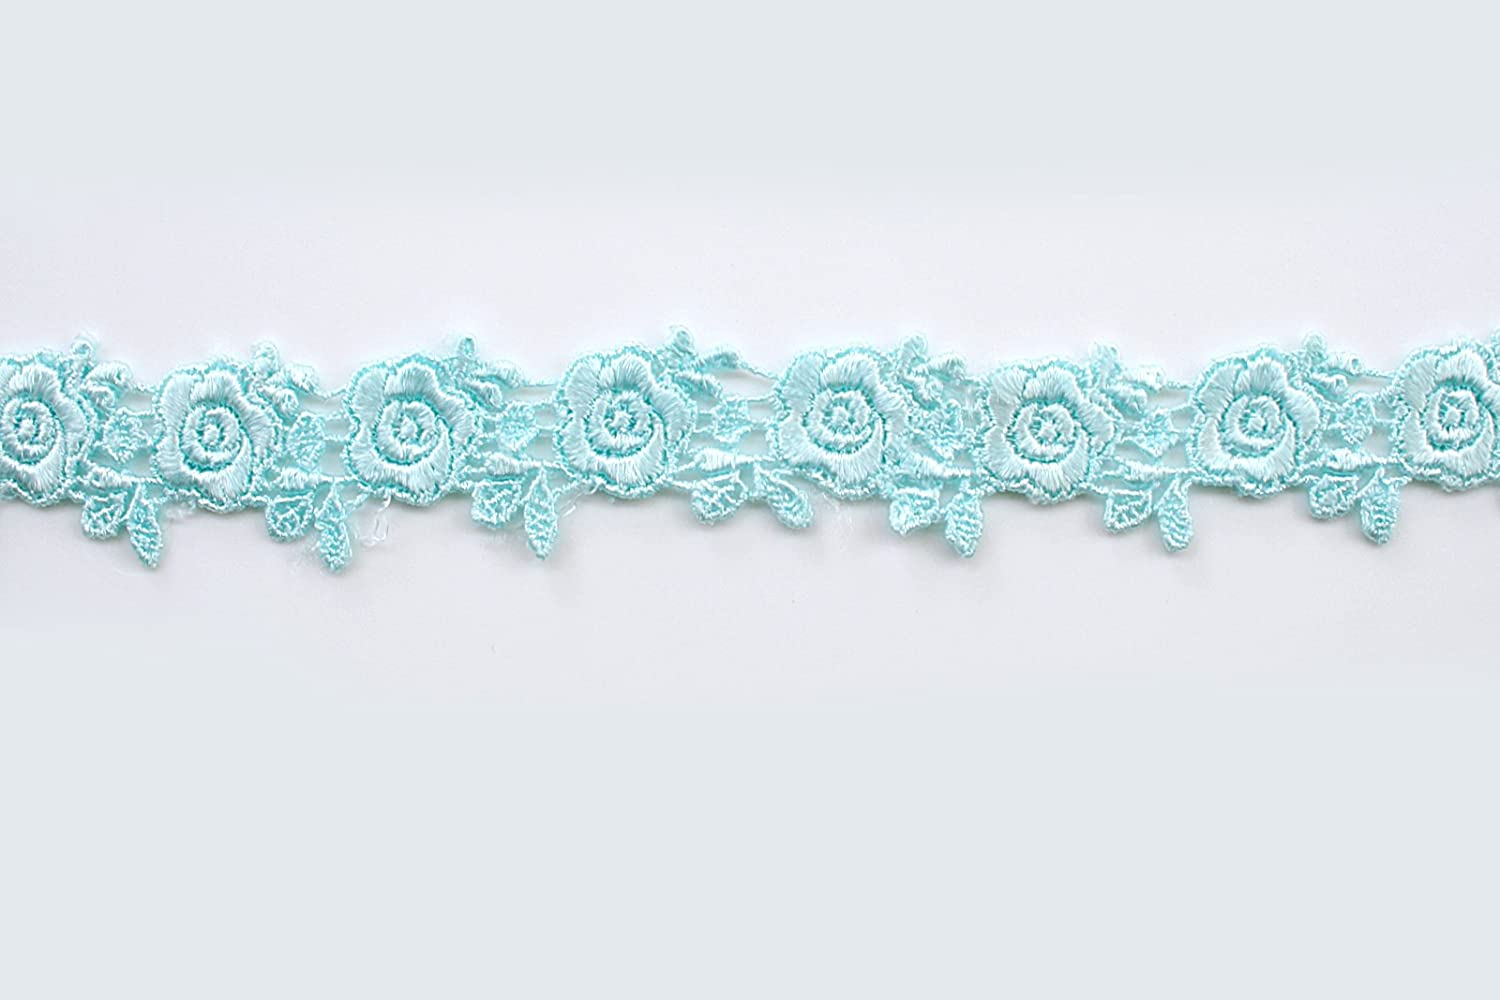 Altotux 1 19 Colors of Embroidered Floral Venice Lace Trim Guipure Trimming By Yard Navy